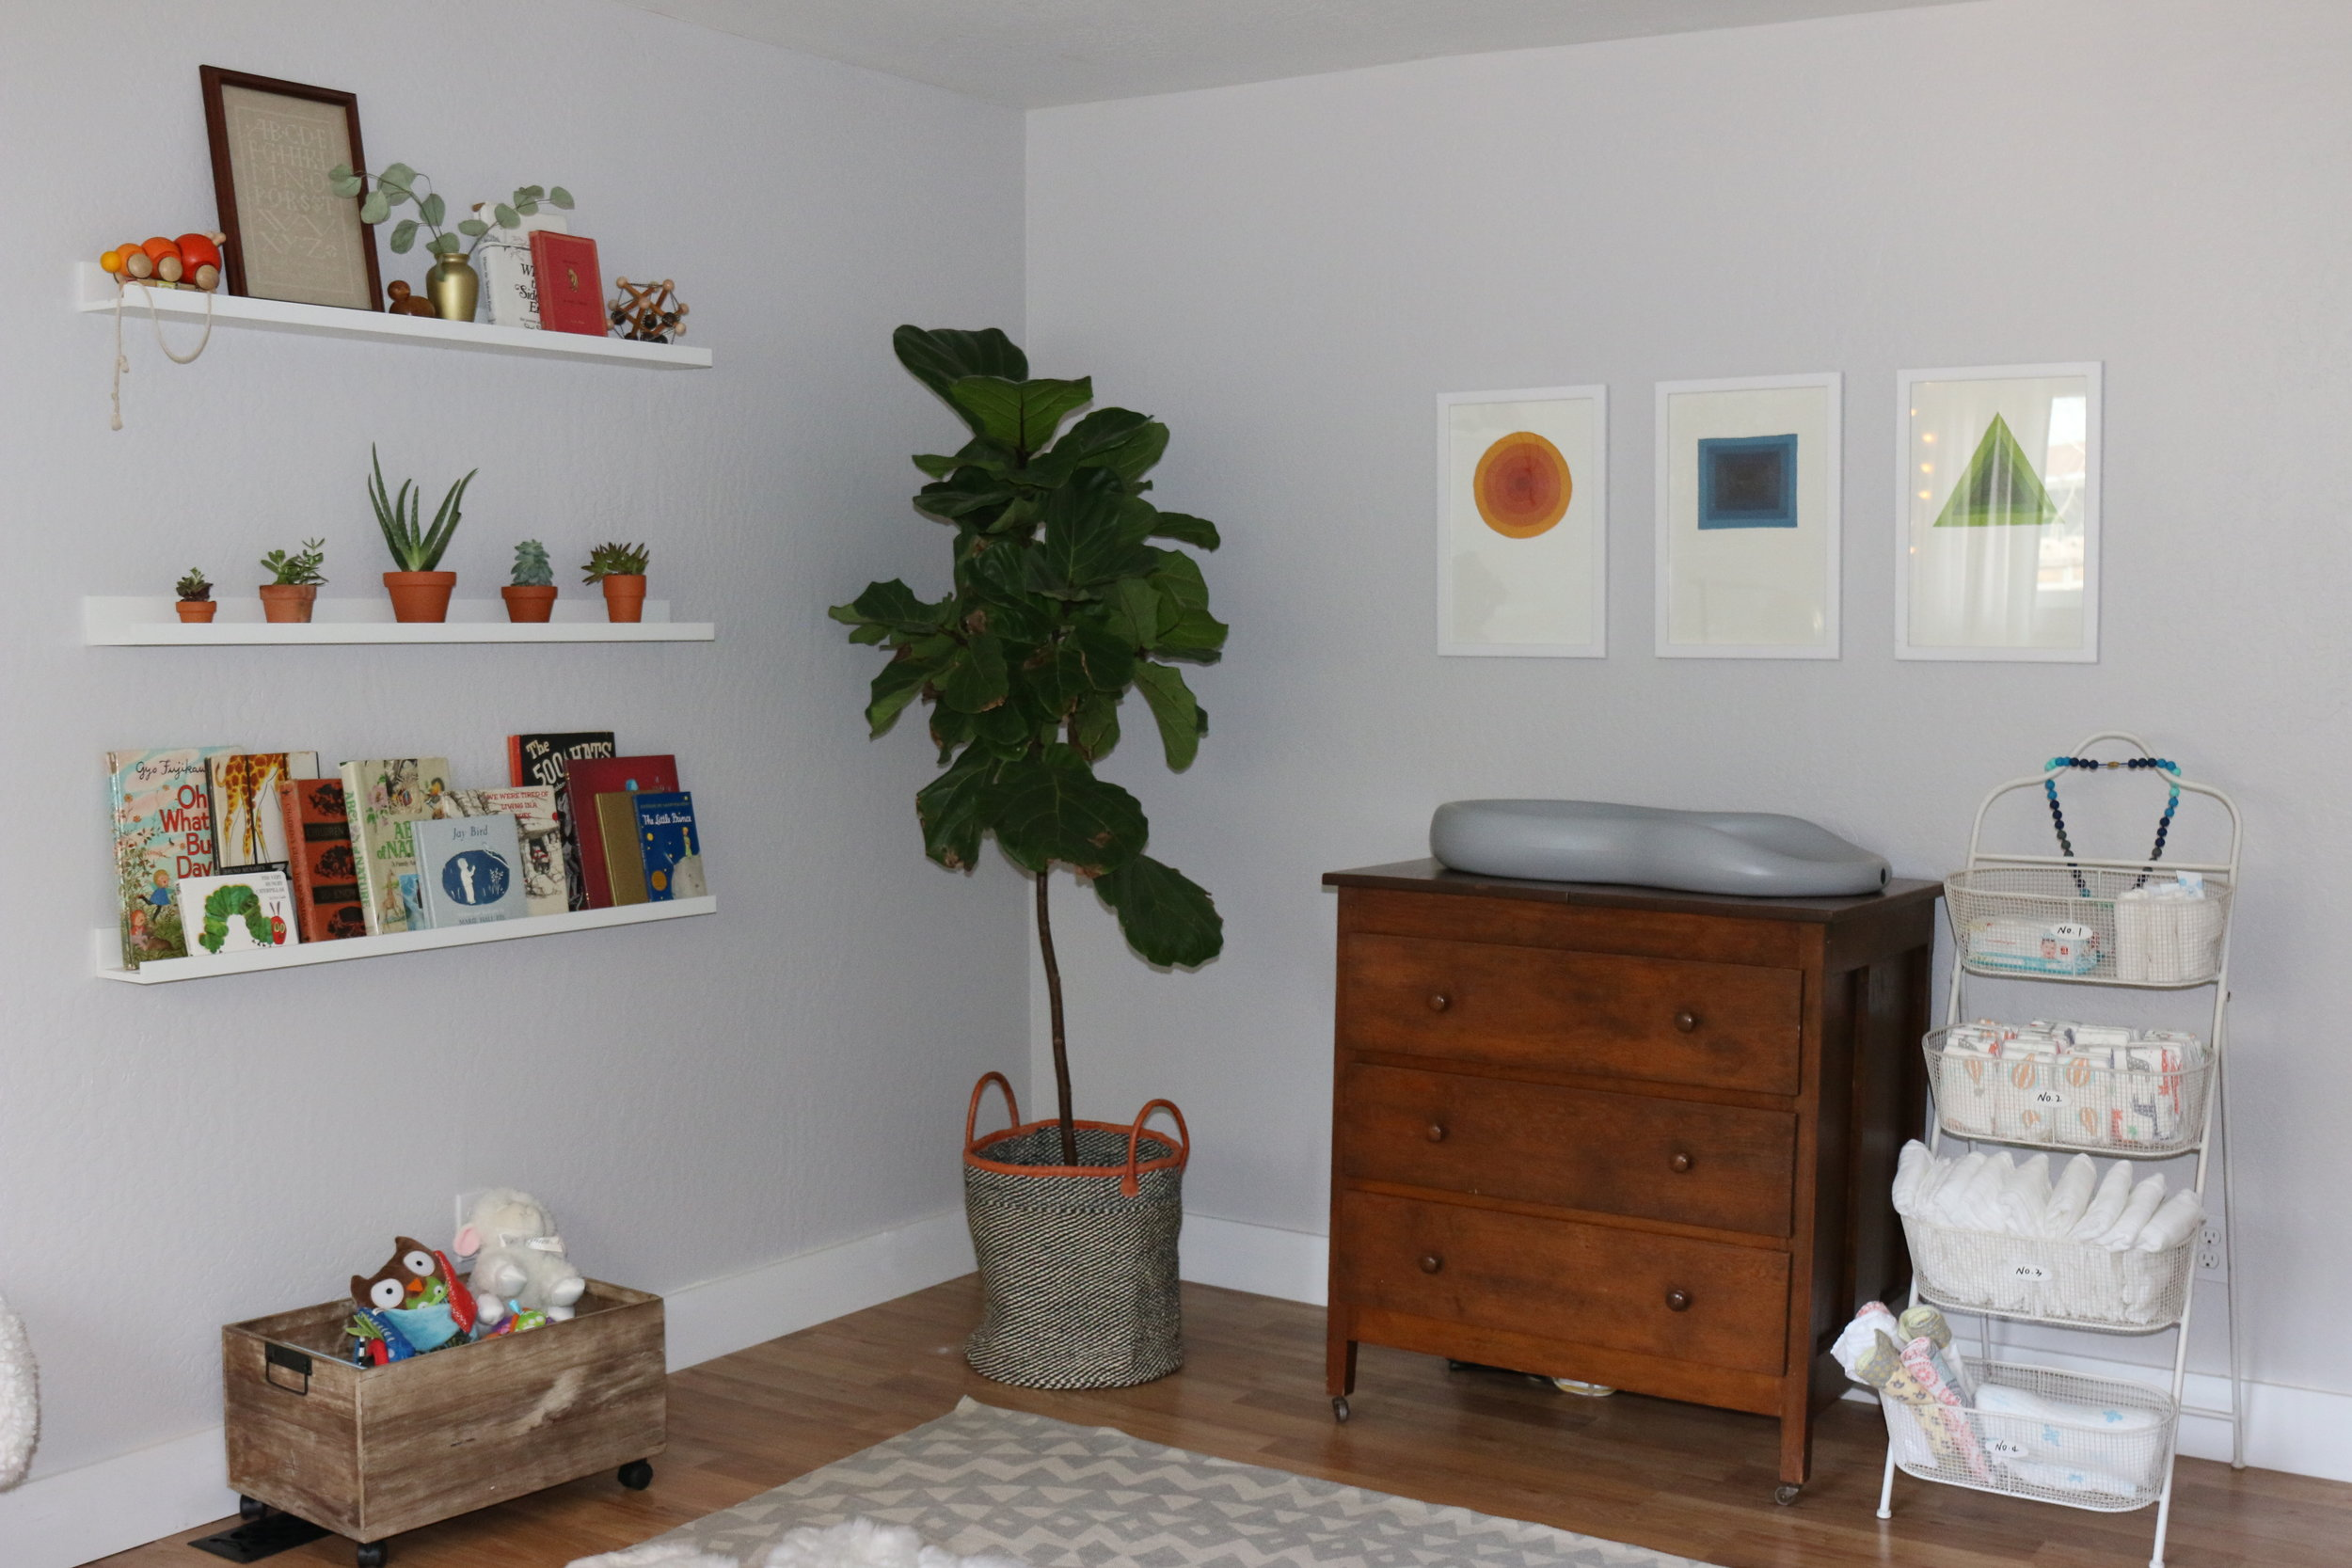 (IKEA shelves, Fiddle Leaf Fig from Home Depot, Basket from @safari_heidi, art from www.jaybryantjones.com who happens to be Daddy, organizer from Home Goods, rug from Urban Outfitters, dresser is a family piece, changing pad is called a Keekaroo Peanut, wood crate on wheels from Home Goods.)